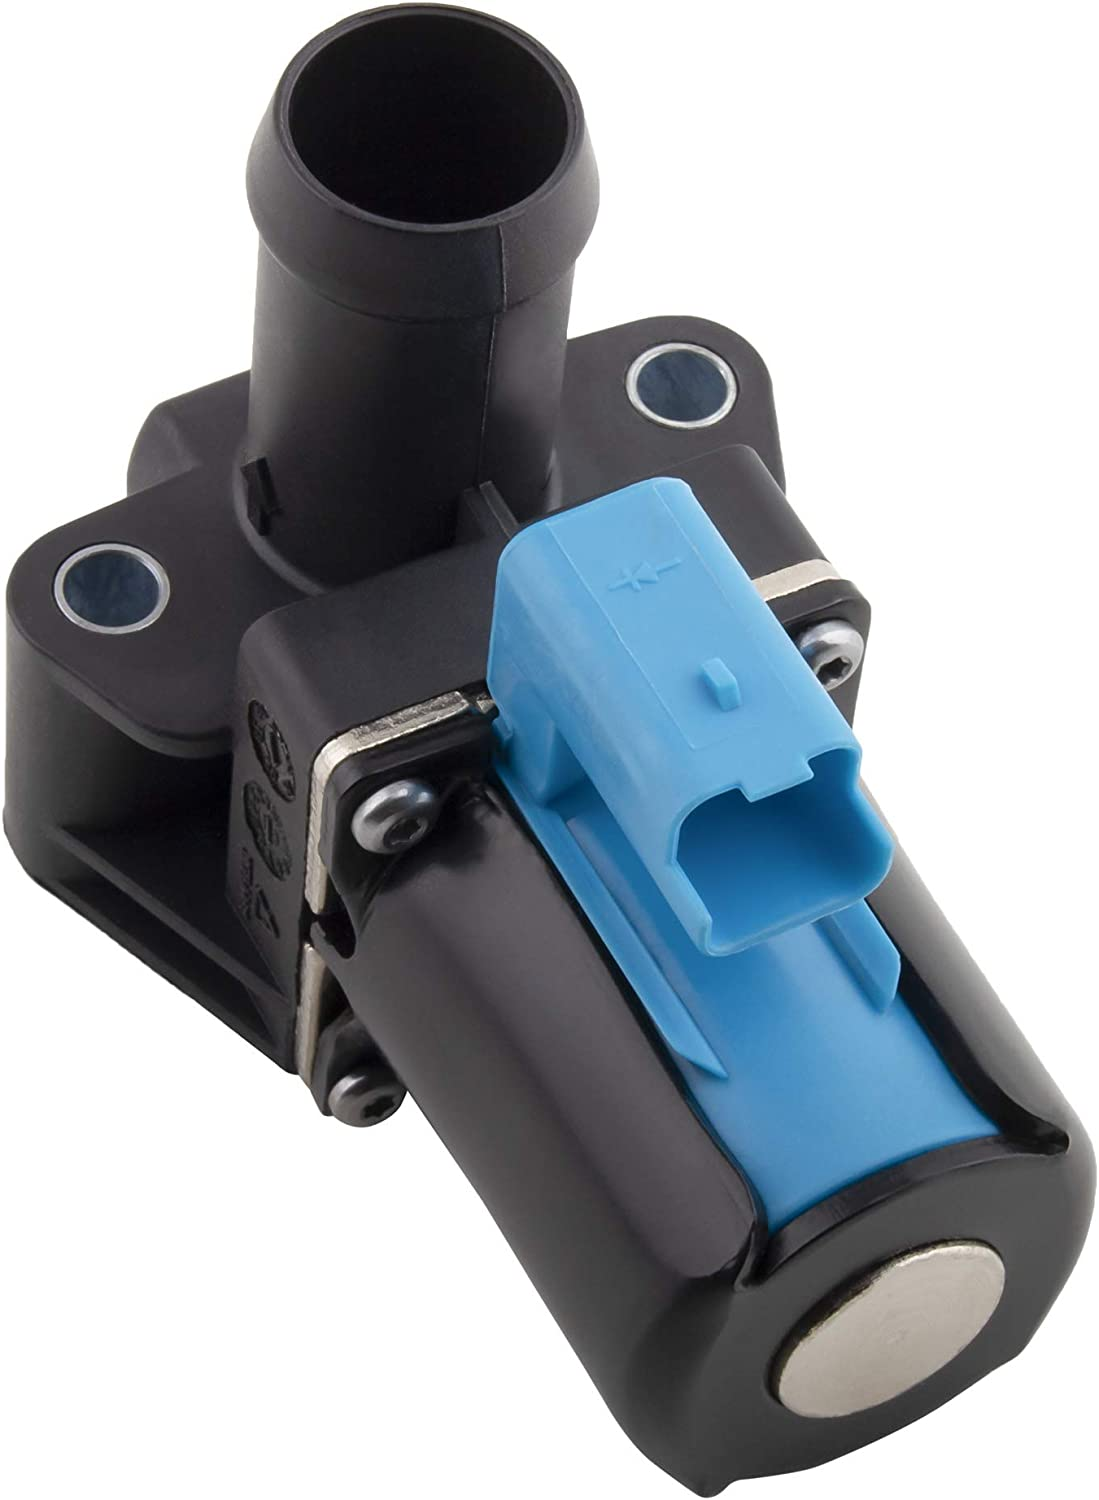 MYSMOT Heater Control Valve Solenoid Outlet ☆ Free Shipping 2013-2016 Compatible with Max 52% OFF F